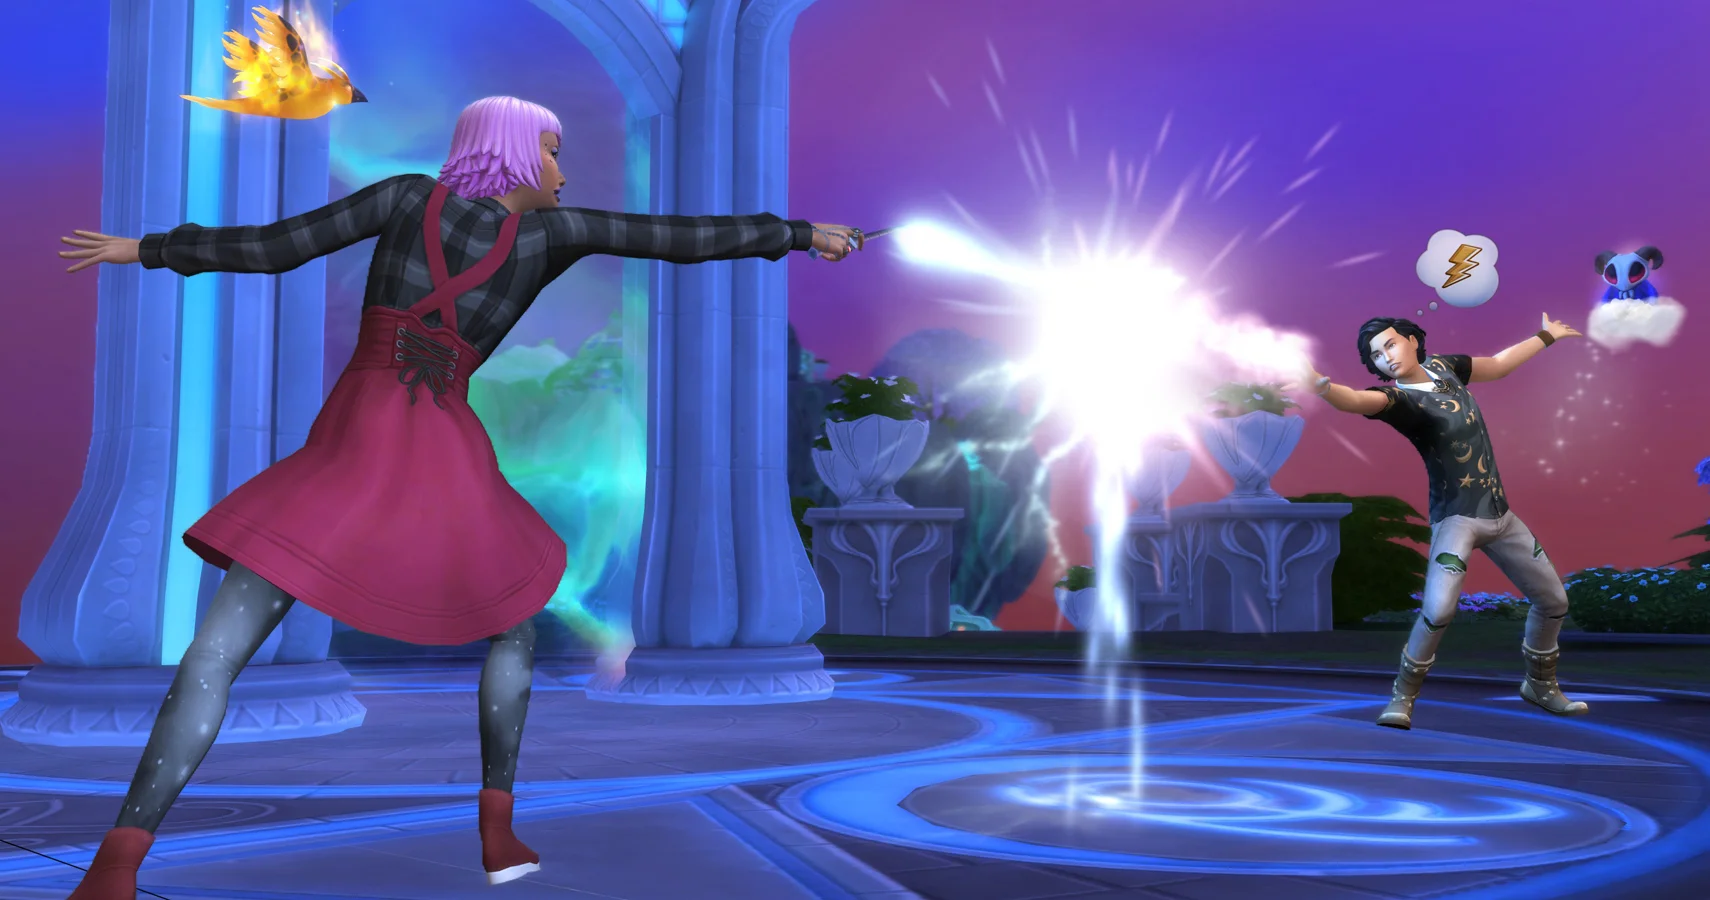 The Sims 4's Realm of Magic expansion gets a little too powerful